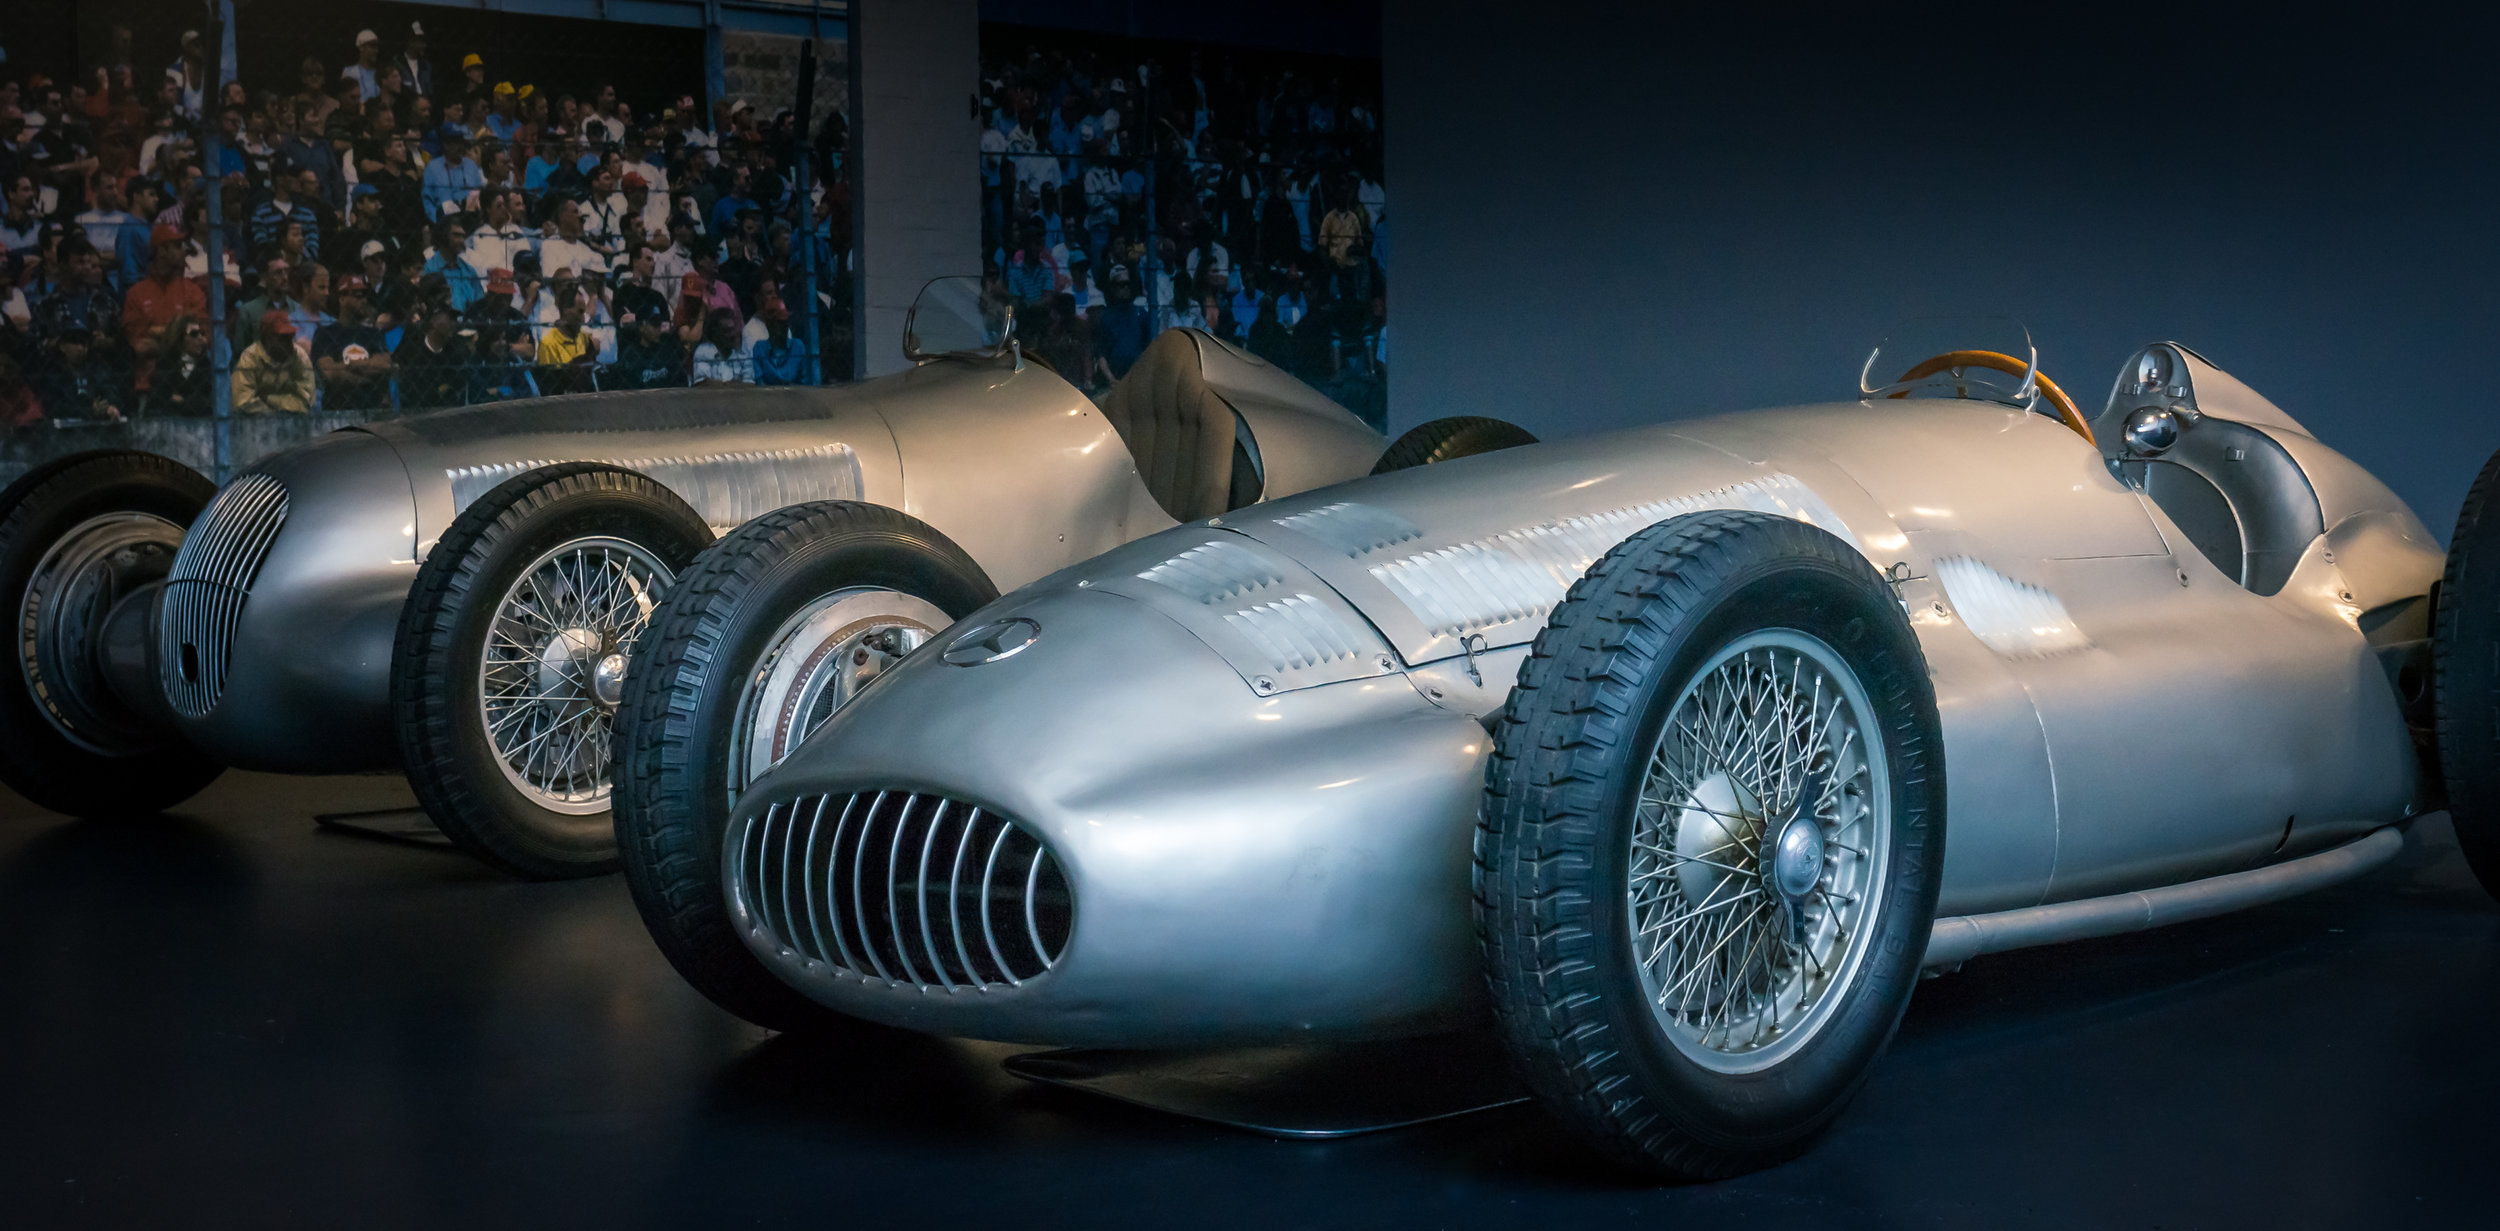 Mercedes-Benz W154 (1938) and Mercedes-Benz Type W125 (1937) in the background (Credit: Paul Scarfe)